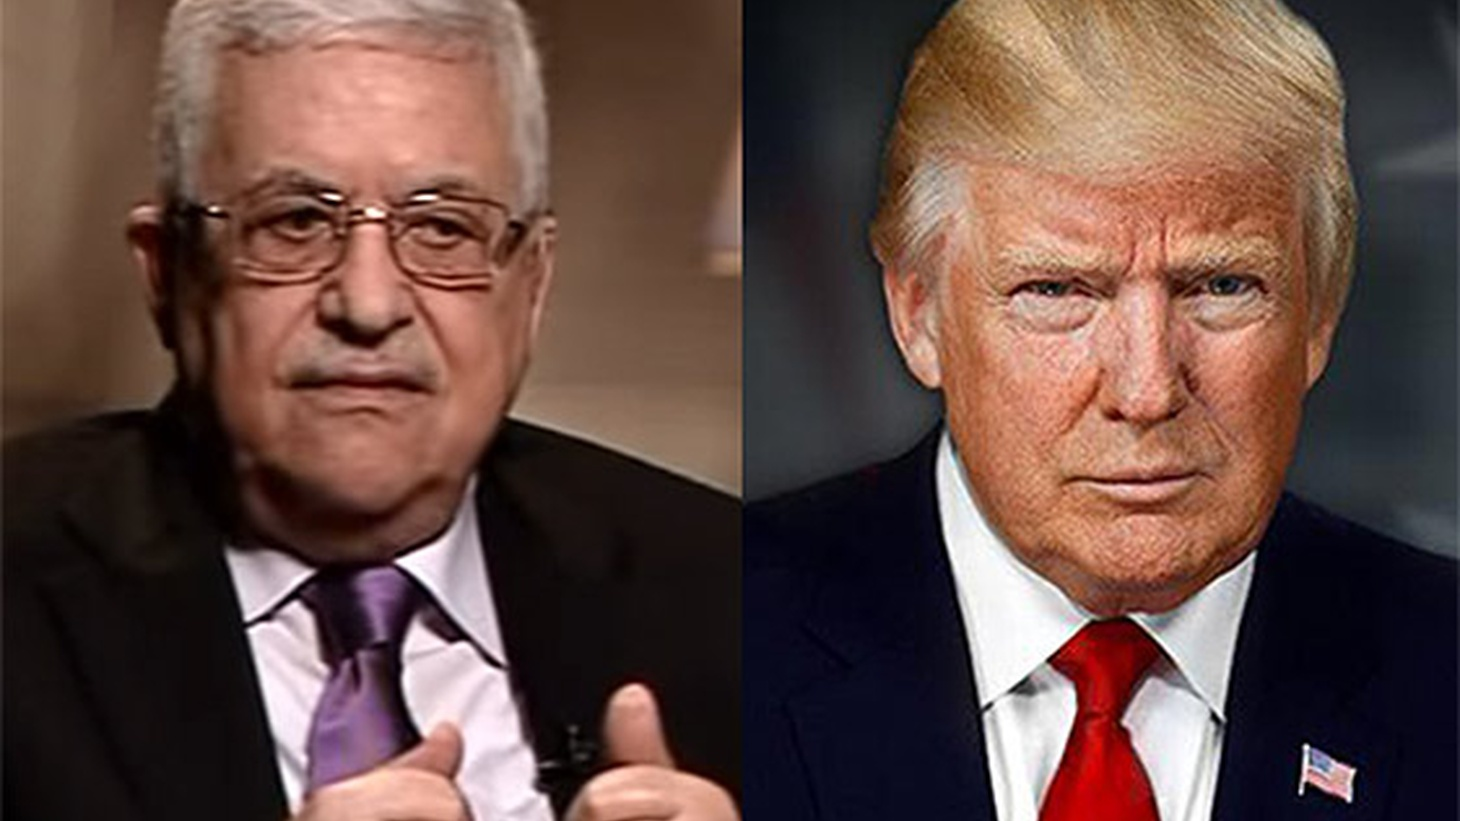 """President Trump says there's """"no reason there can't be peace"""" between Israel and the Palestinians… but the first step will have to be unity between the West Bank and Gaza. Are the Palestinian Authority and Hamas any closer to speaking with one voice?"""